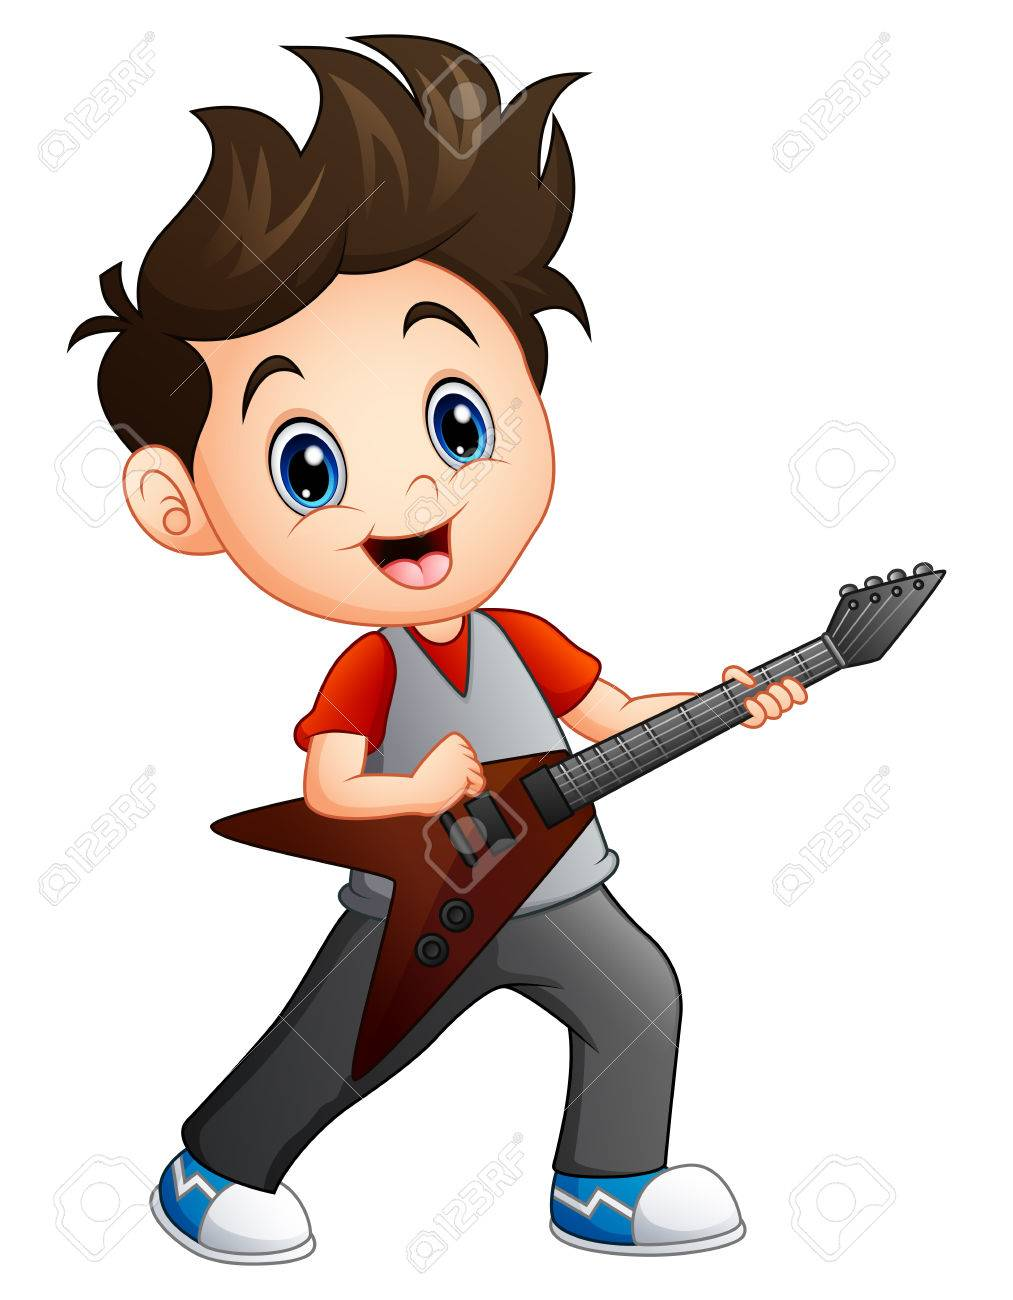 Cartoon Boy Playing Electric Guitar Stock Photo, Picture And Royalty Free  Image. Image 77670917.